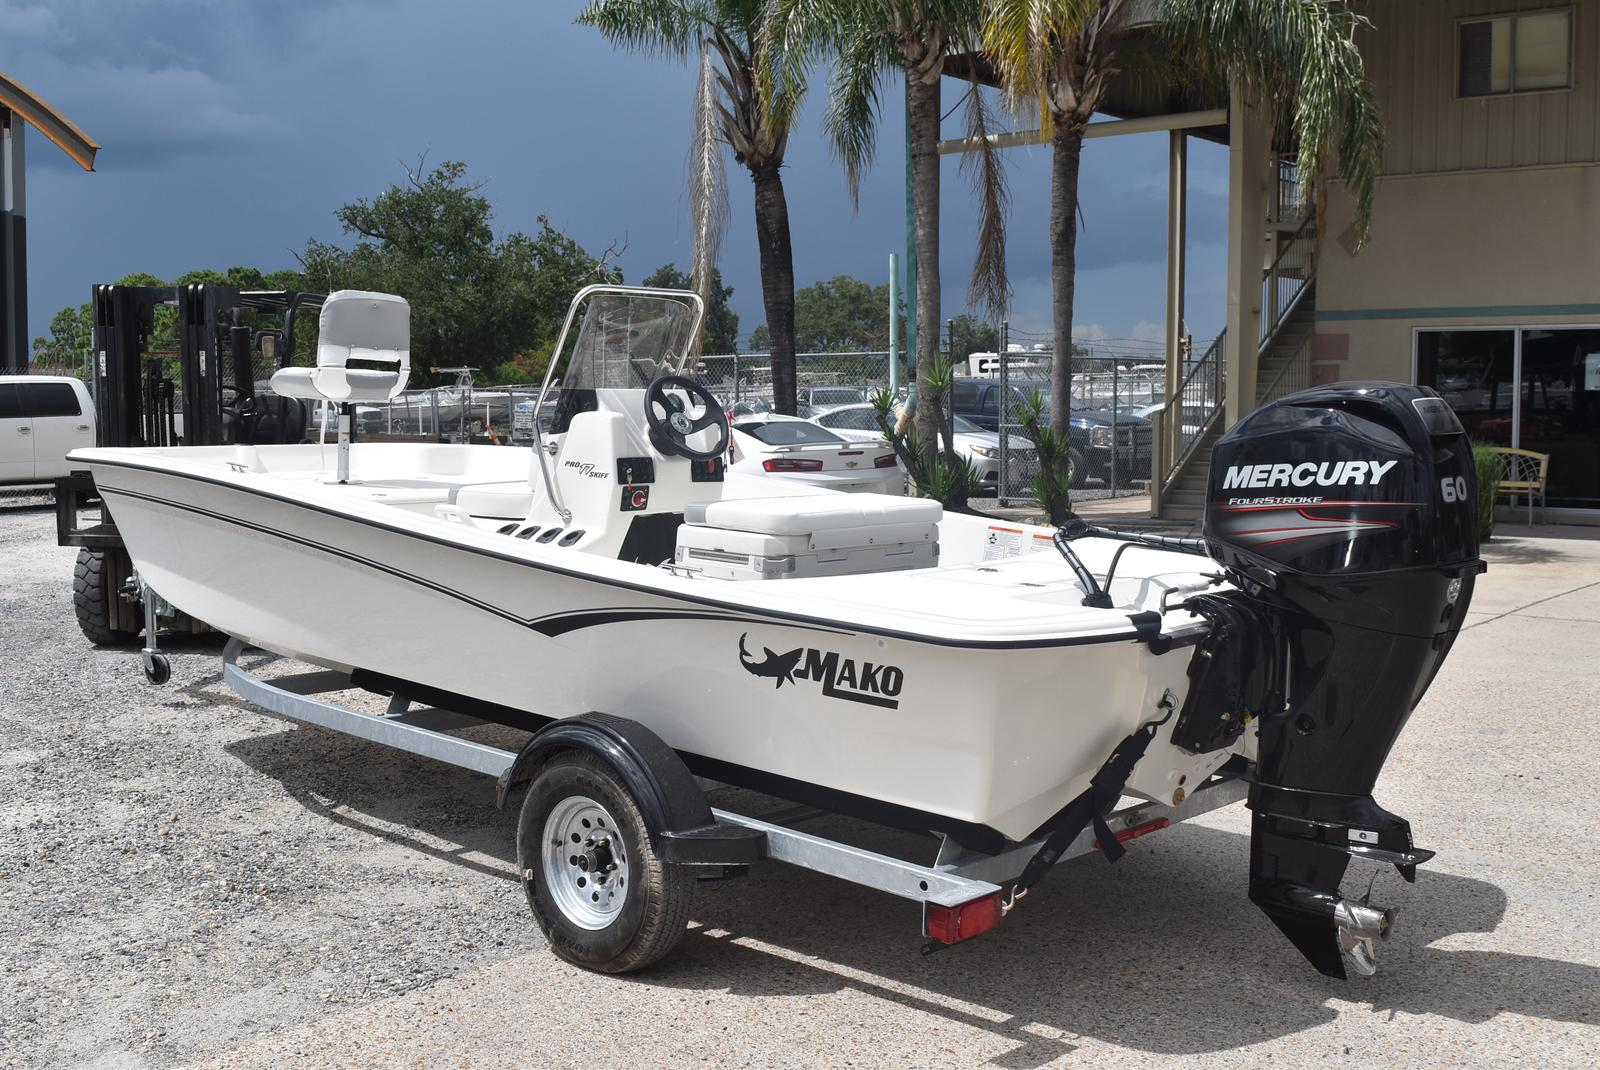 2020 Mako boat for sale, model of the boat is Pro Skiff 17, 75 ELPT & Image # 219 of 702